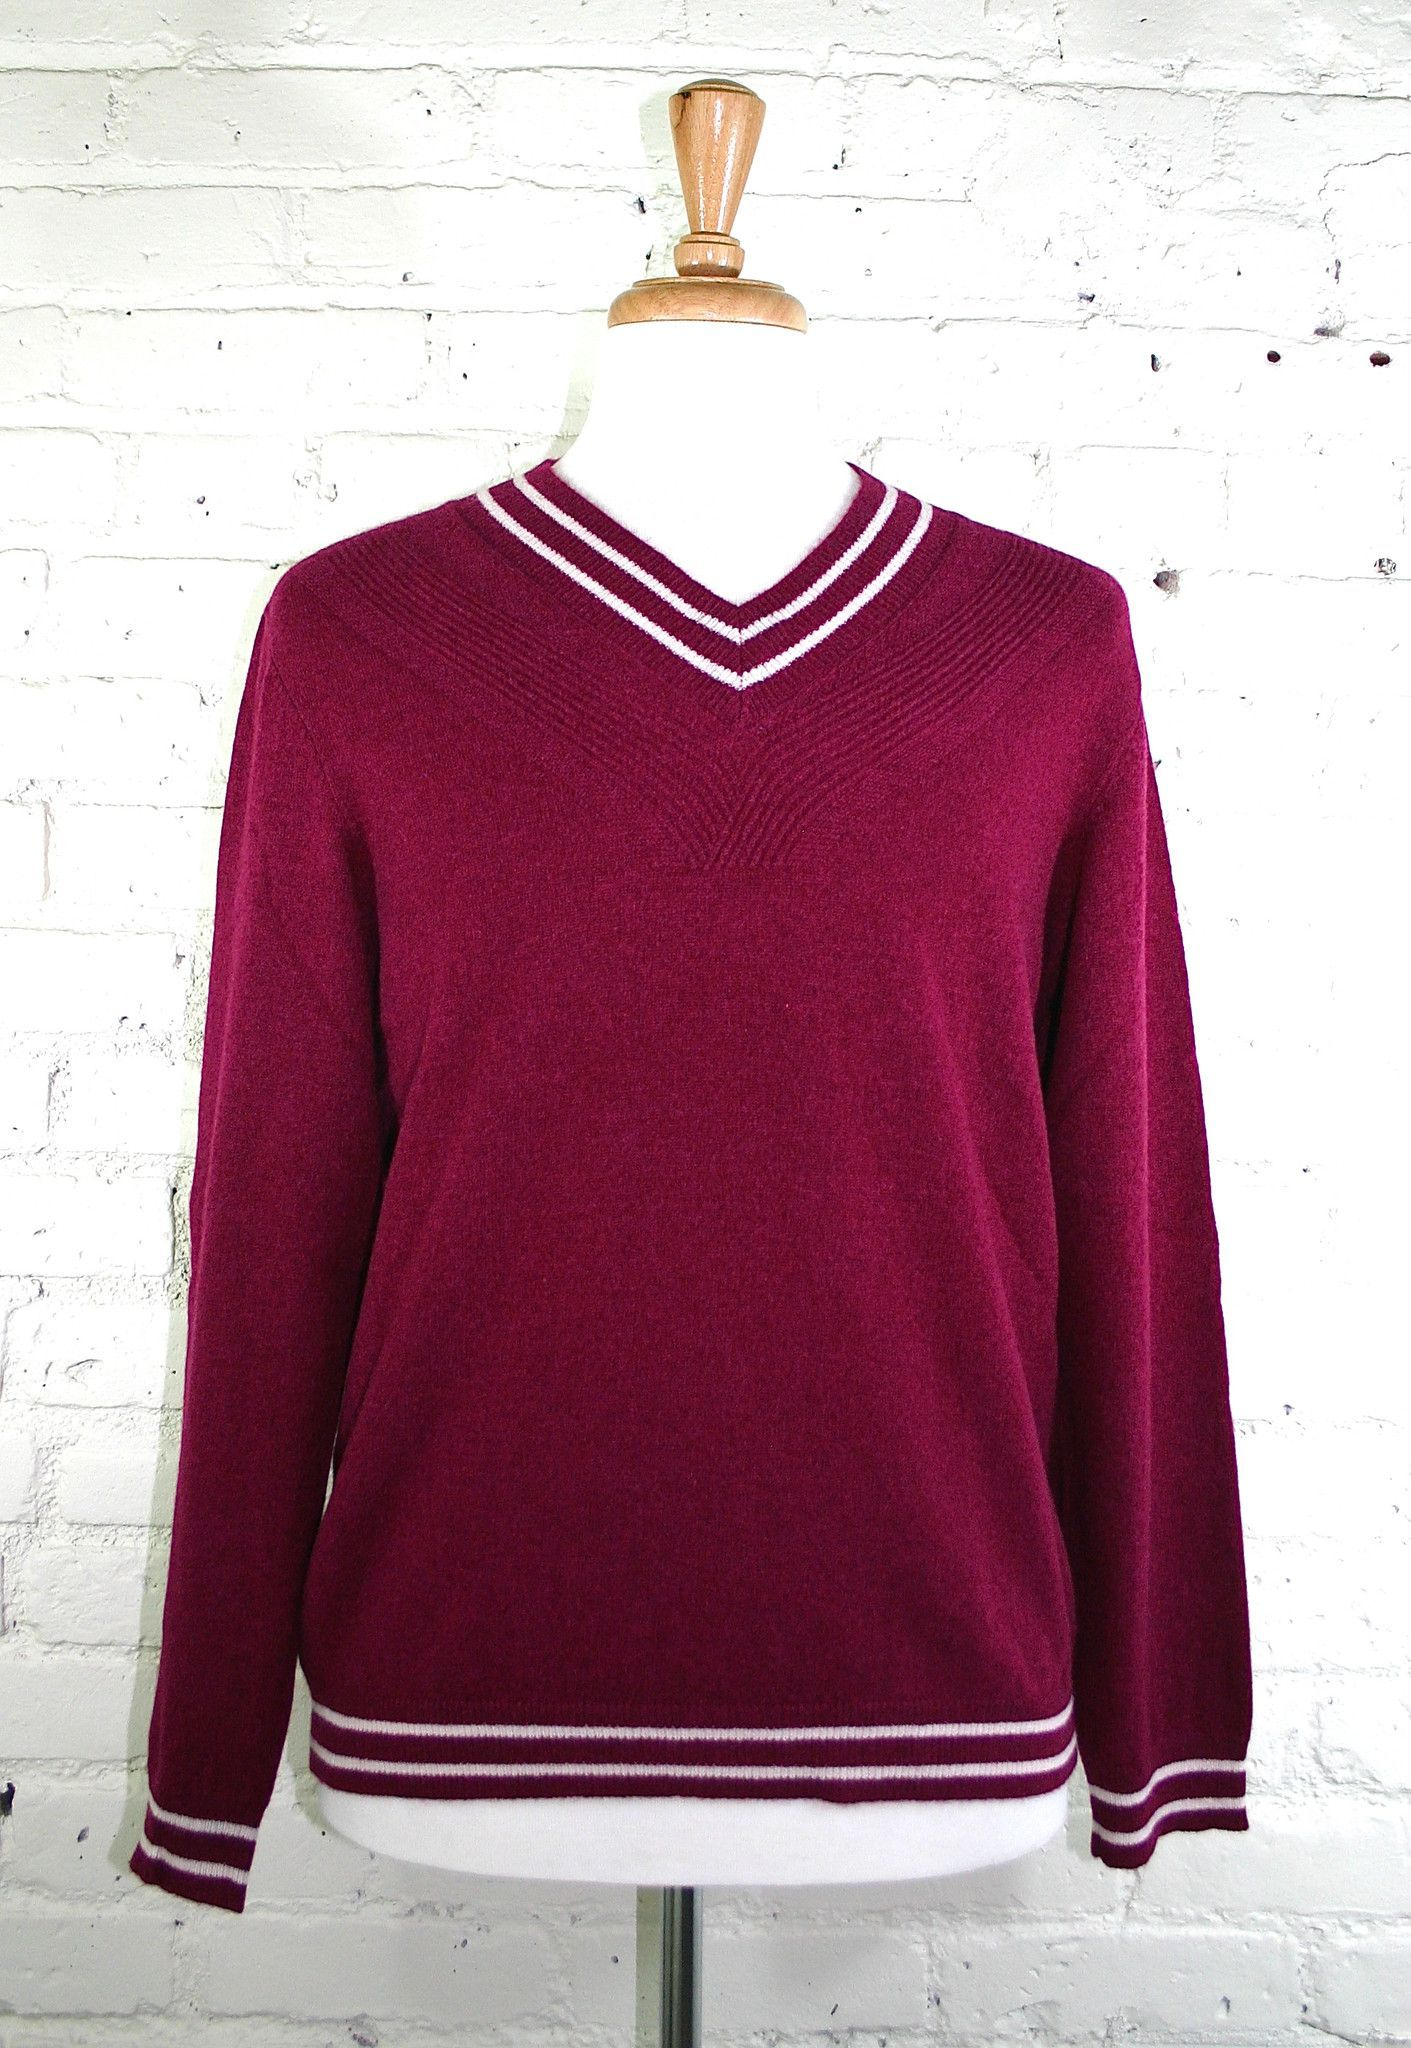 St. Charles Cashmere Sweater - Burgundy | Products | Pinterest ...